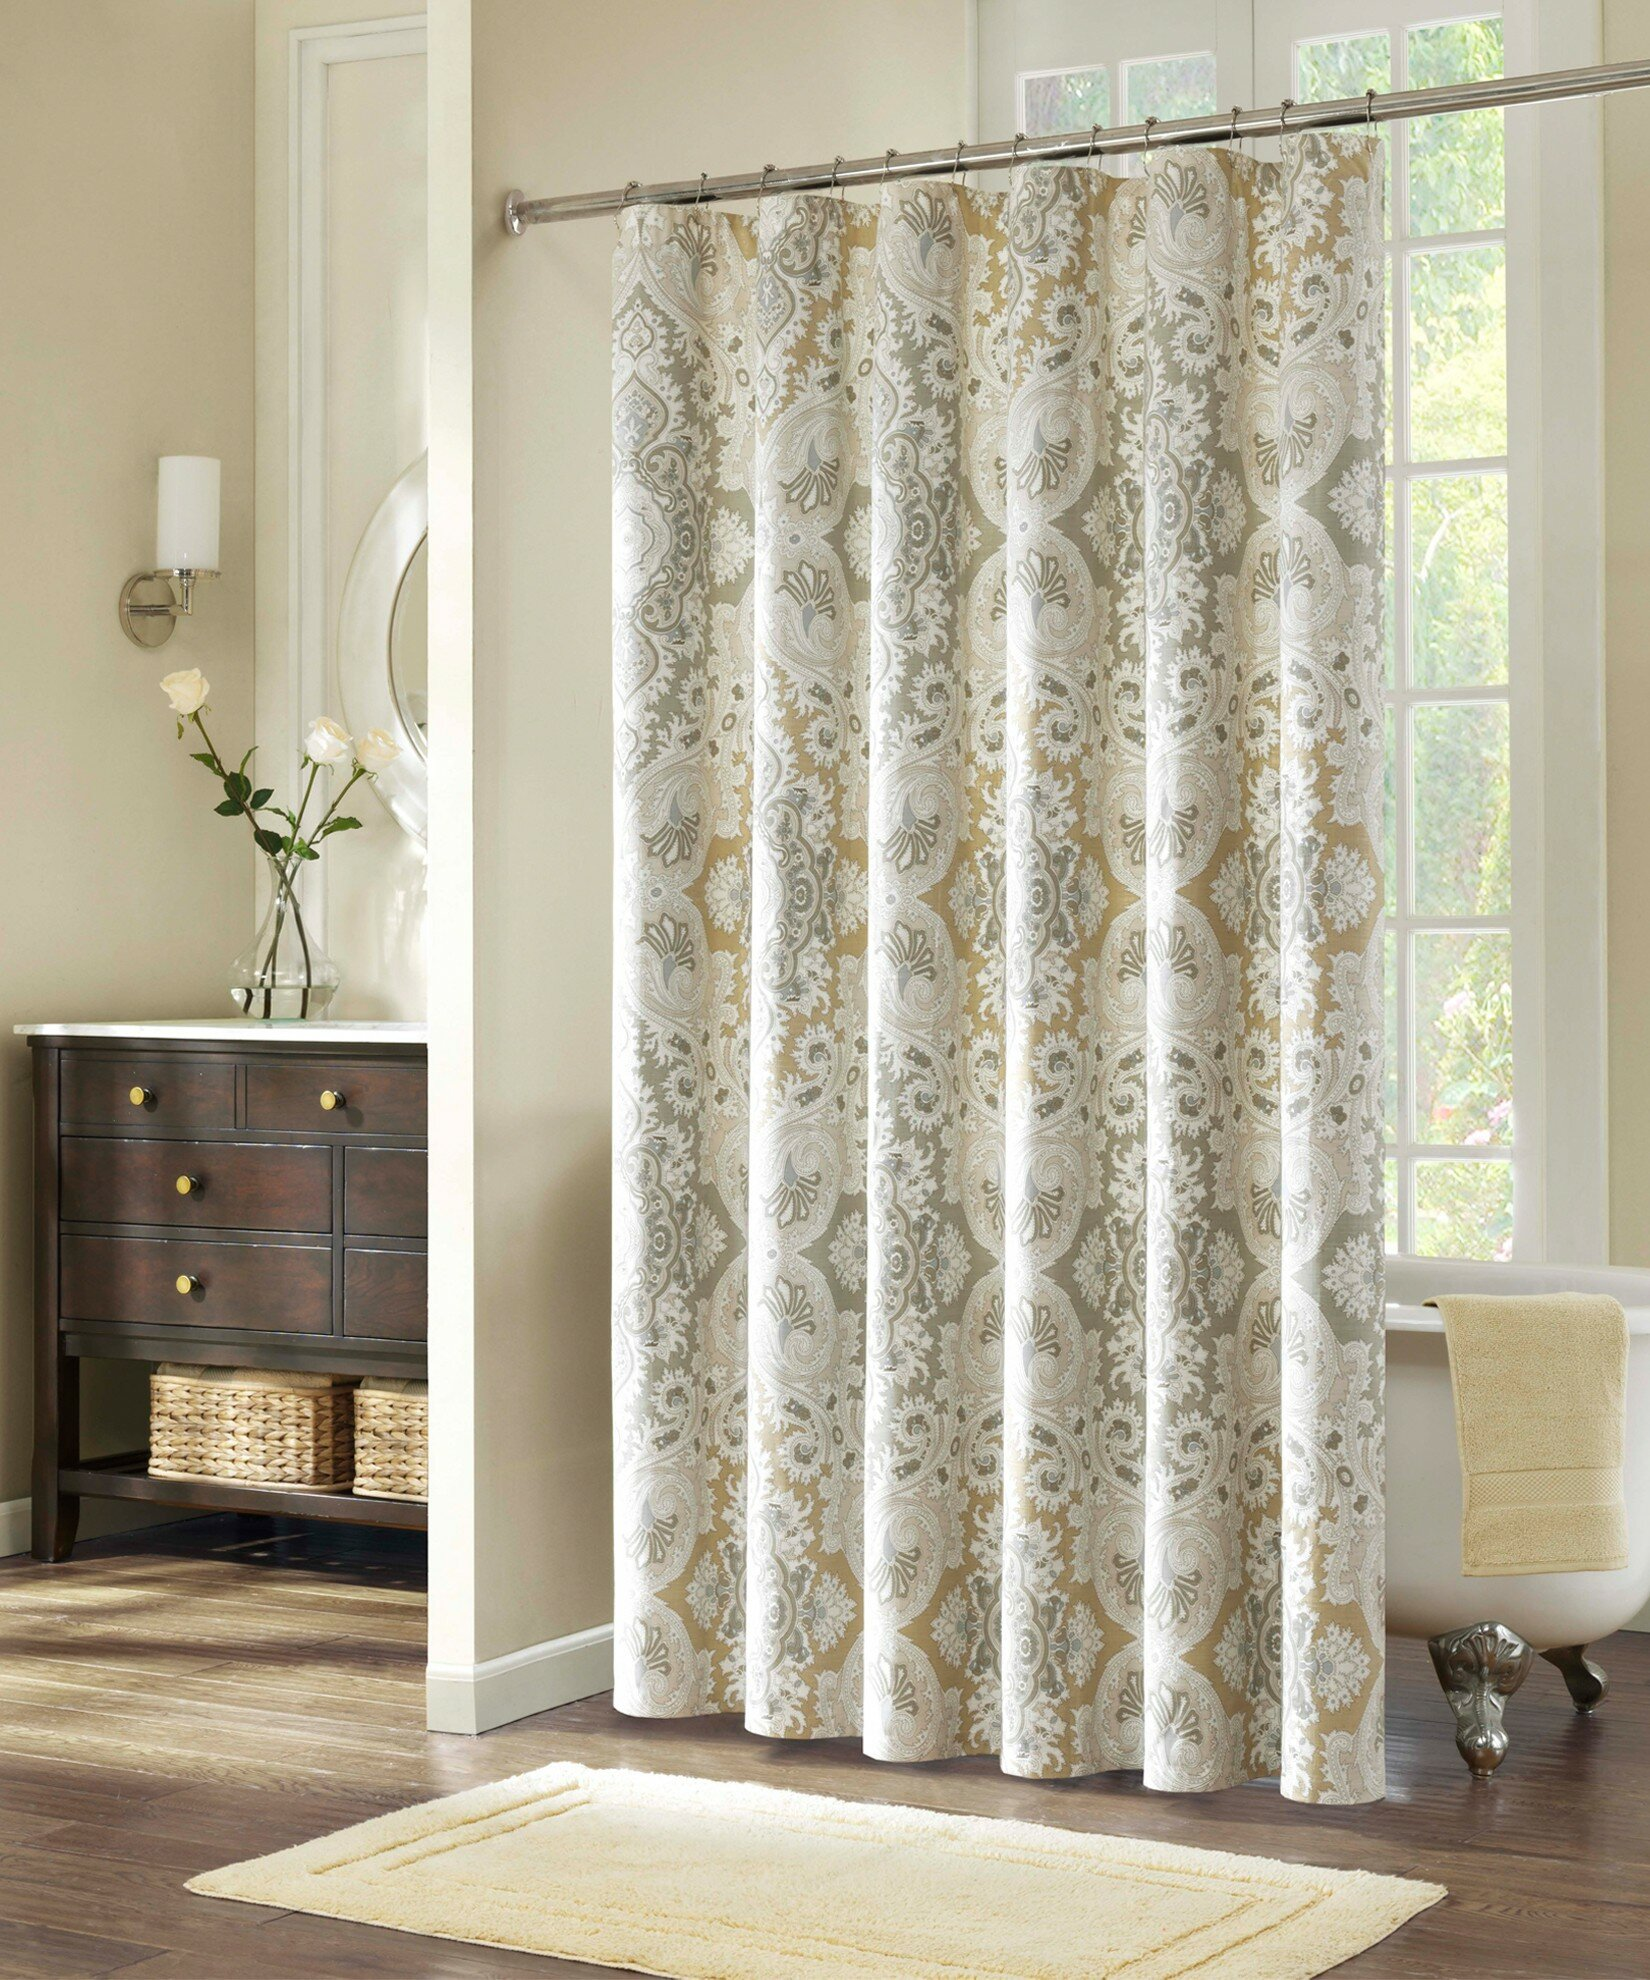 Bathroom window curtains with matching shower curtain - Shower Curtain Liners Sizes Walmart Shower Curtain Corner Shower Curtain Rod Walmart